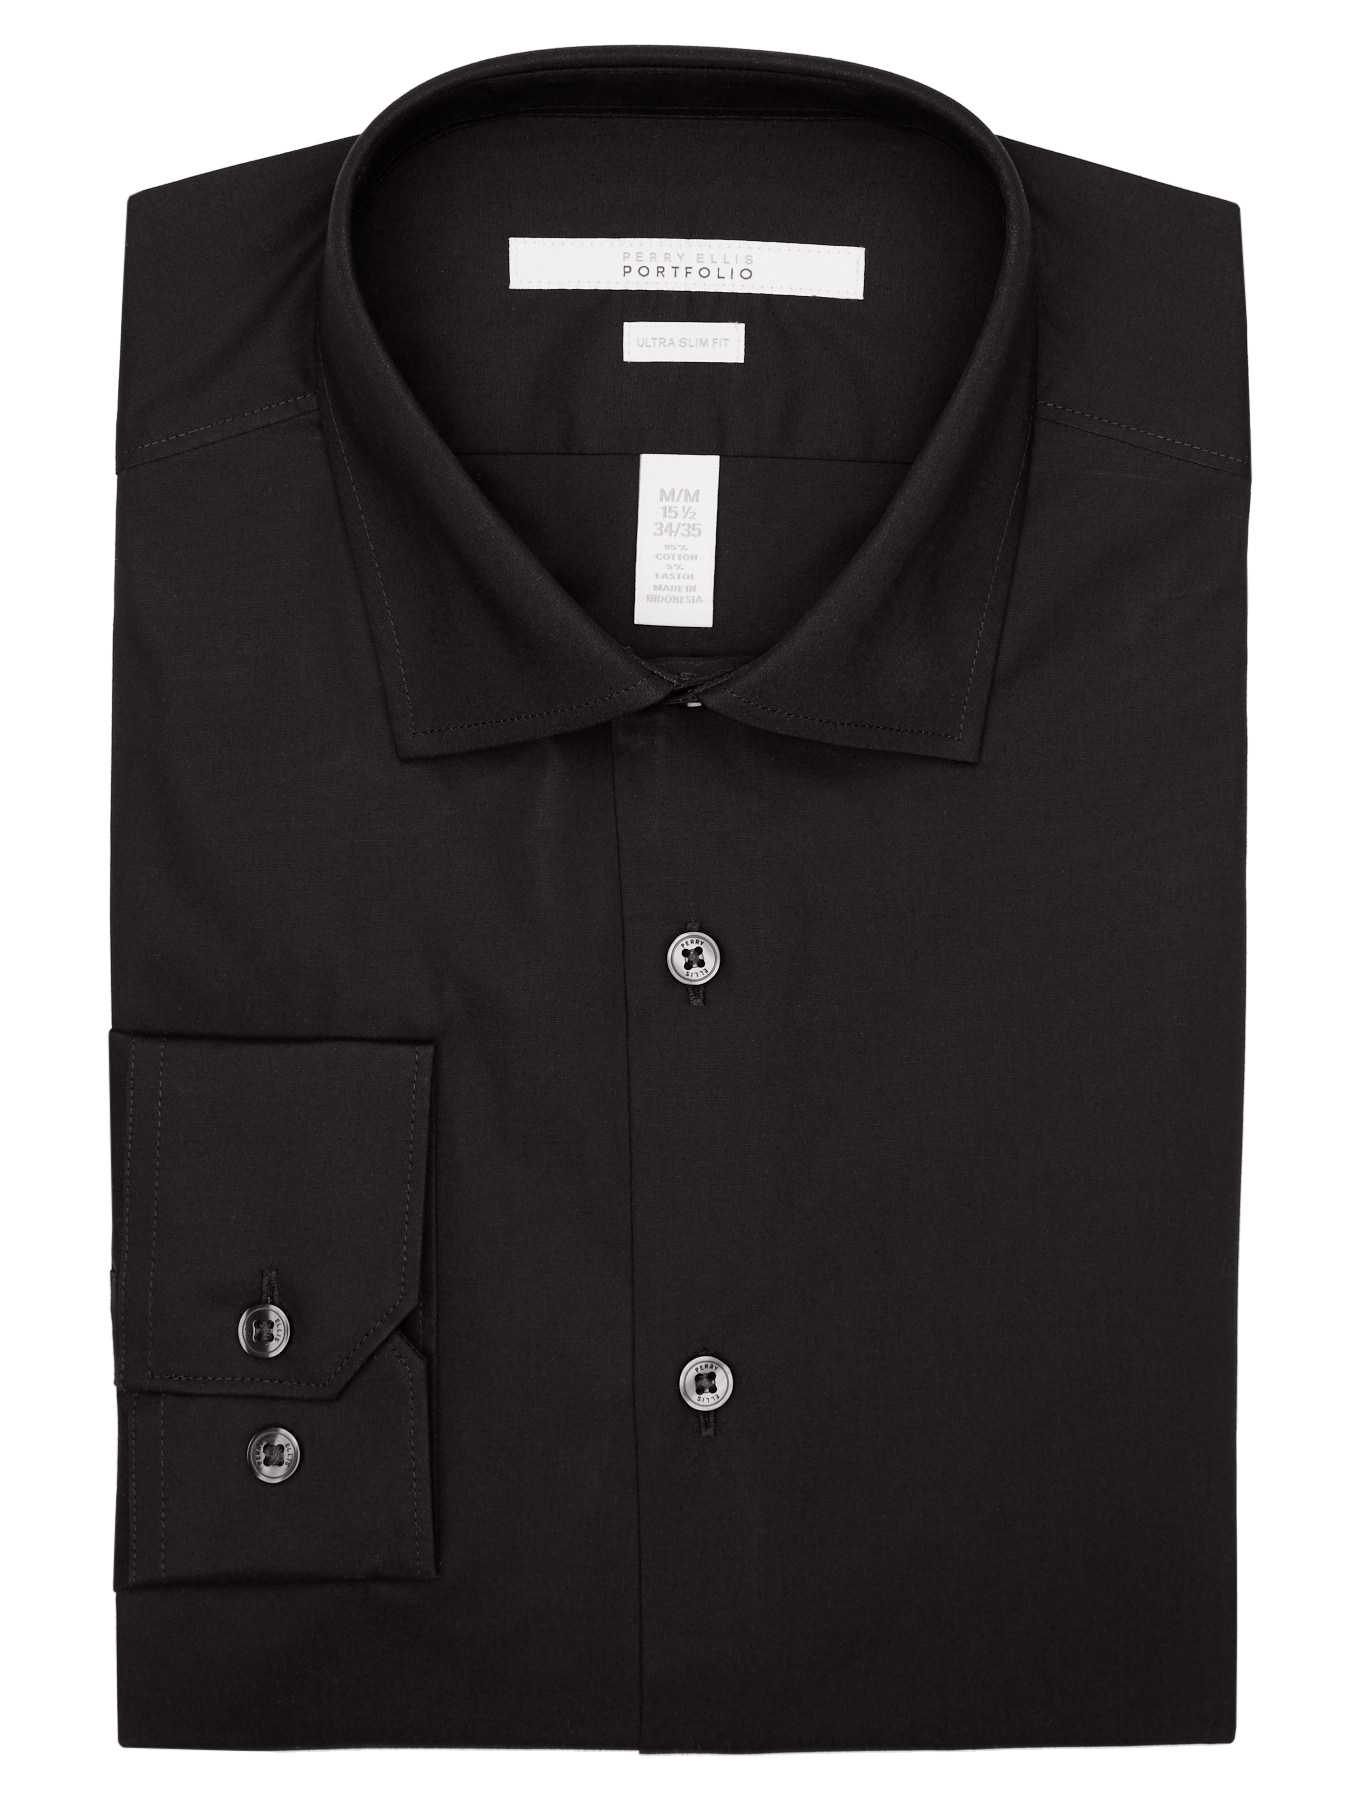 Perry Ellis Ultra Slim Solid Dress Shirt